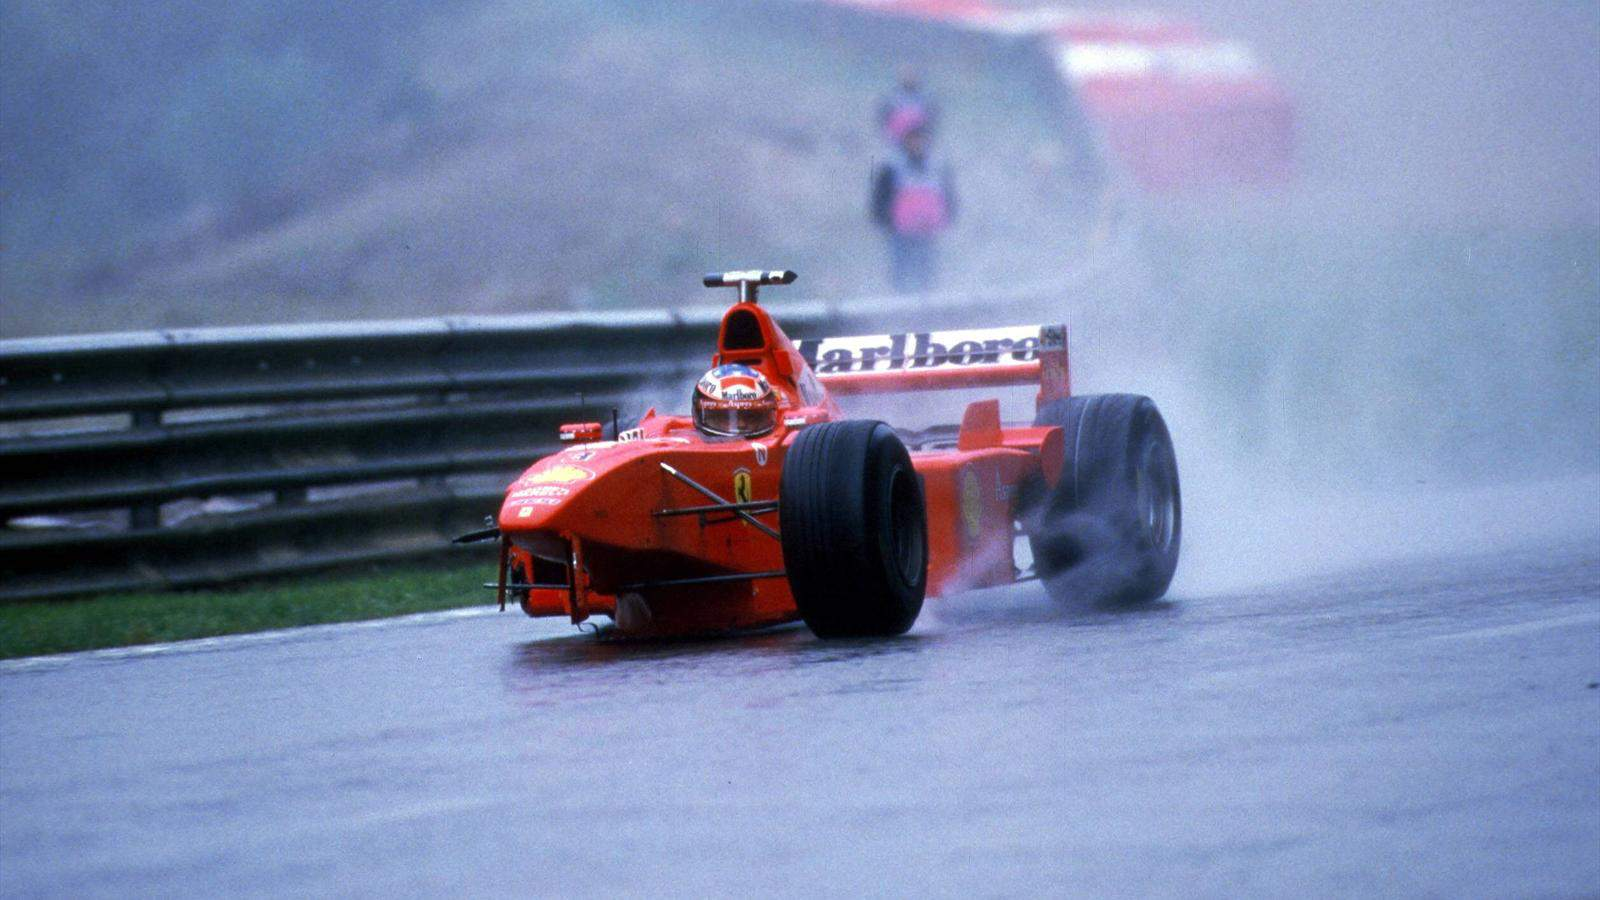 Michael Schumacher Ferrari F300 Belgian GP F1 1998 Photo Reddit